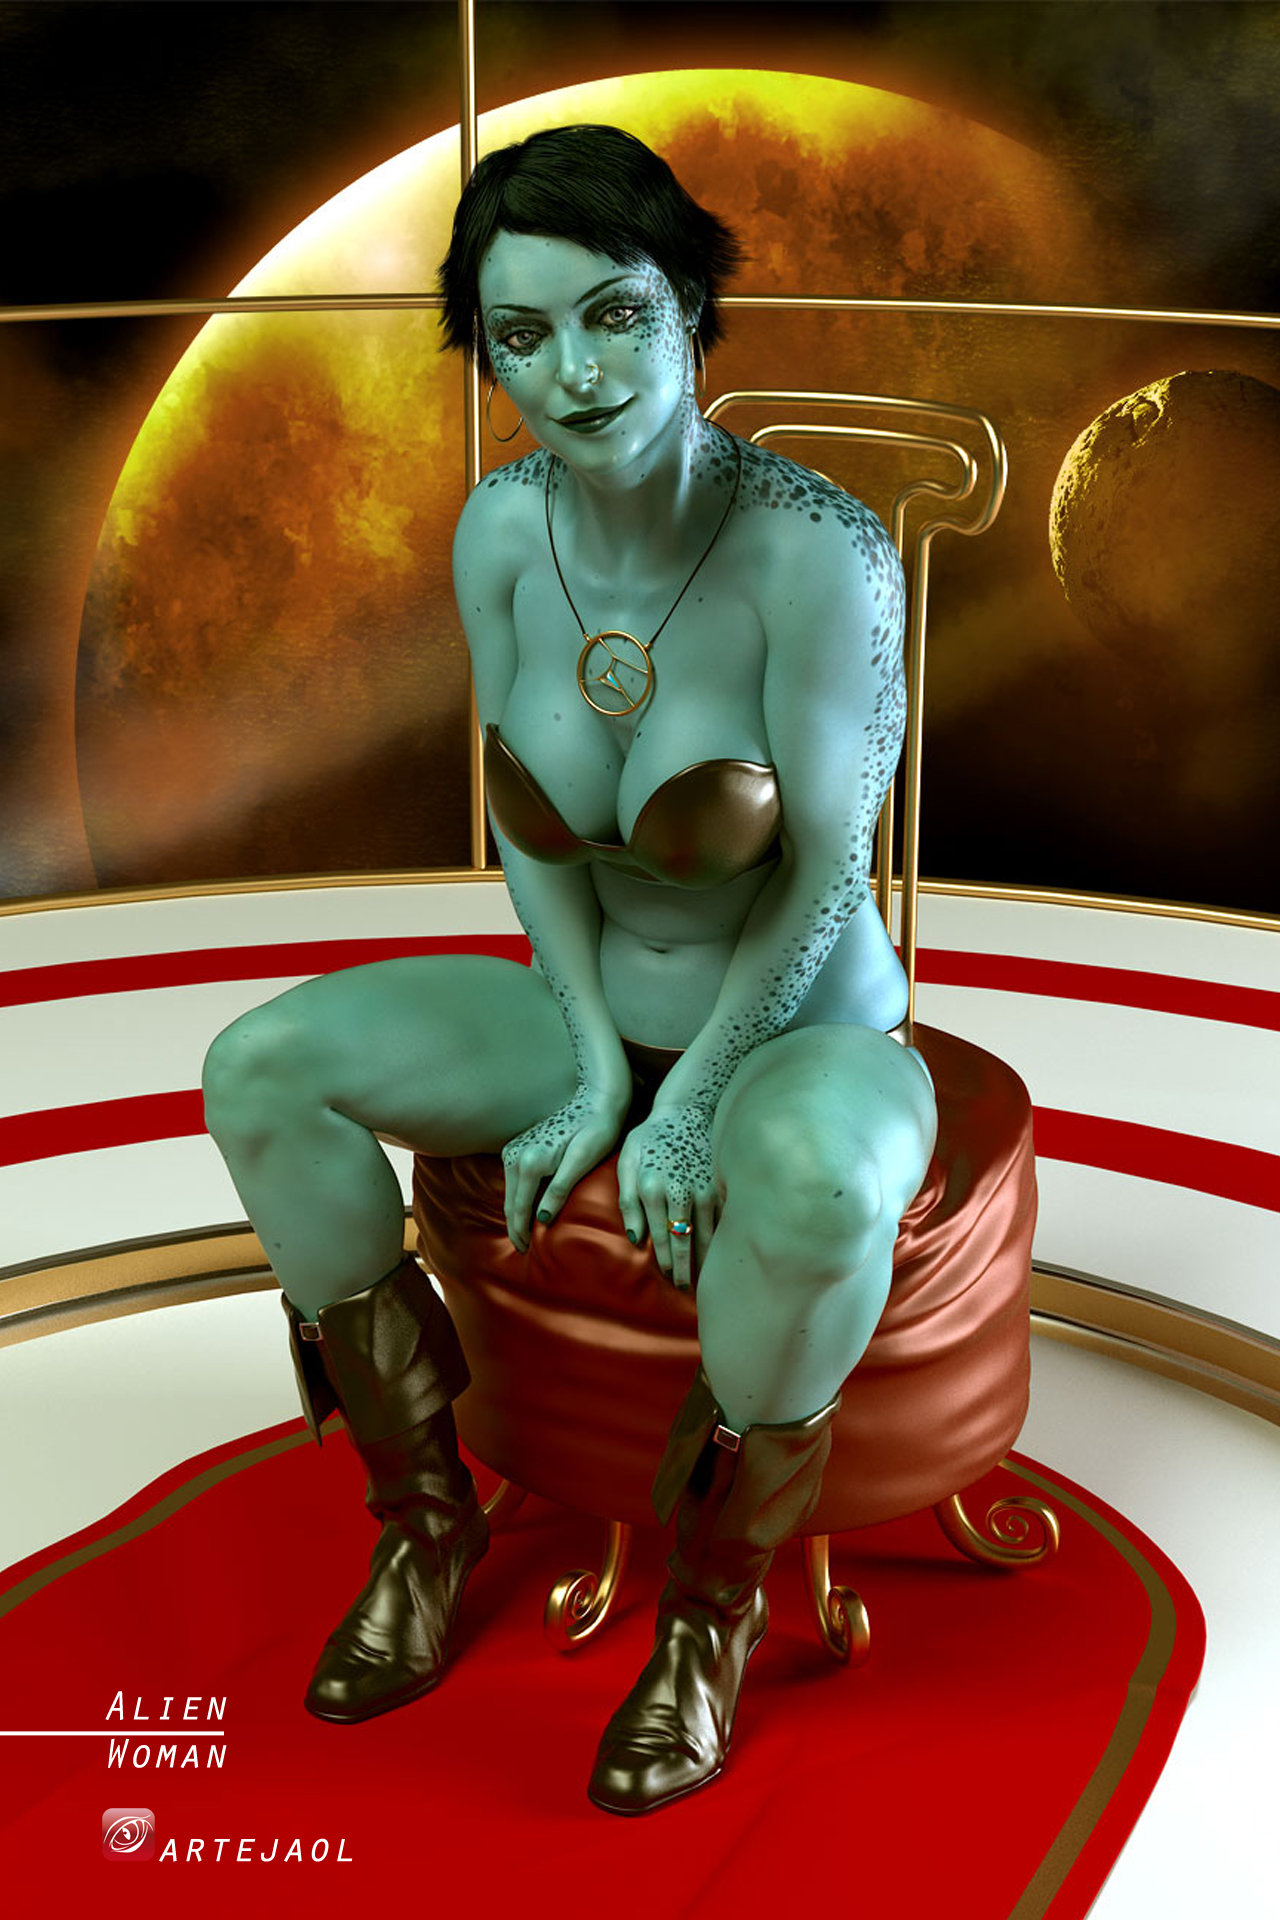 Aliens and women hentia sensual girl